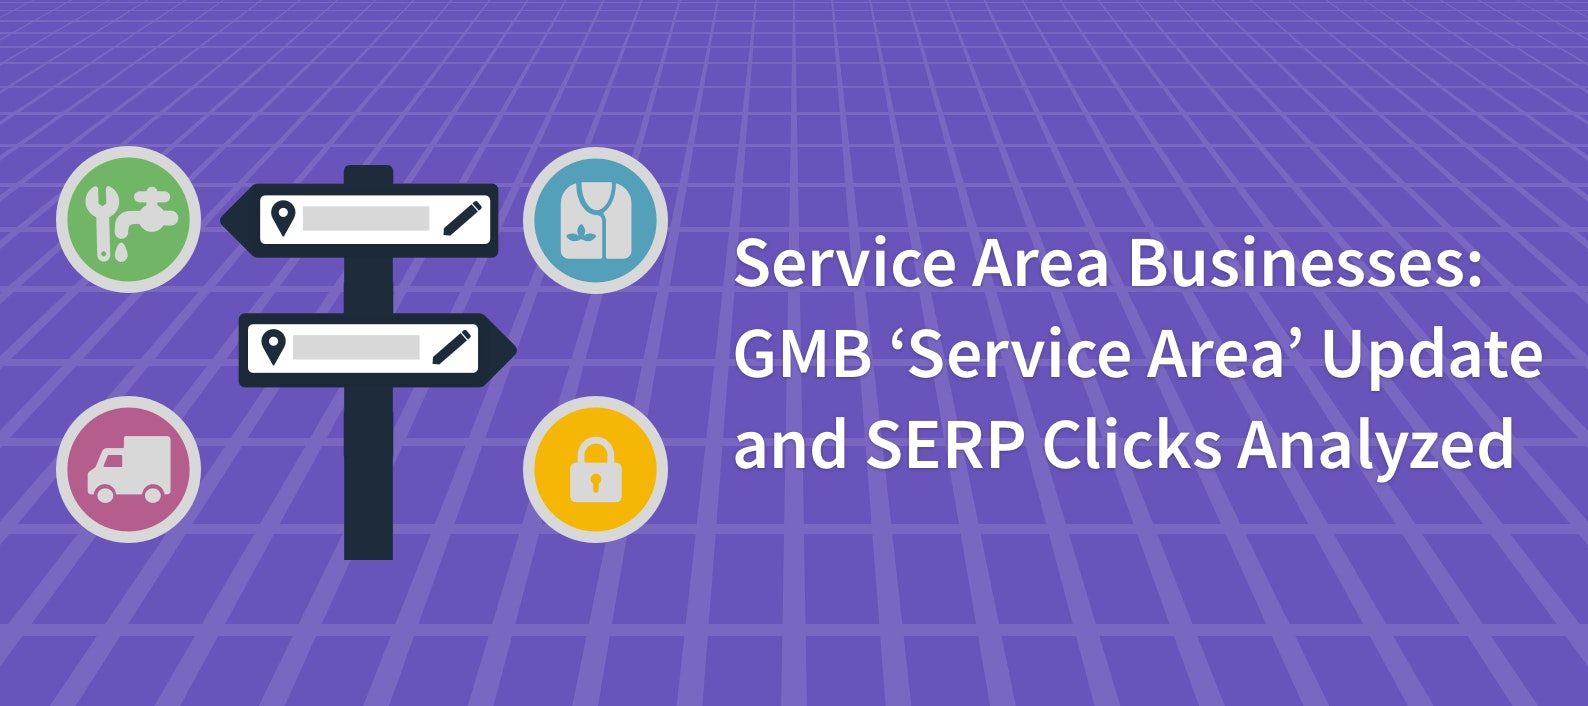 Service Area Businesses: GMB 'Service Area' Update and SERP Clicks Analyzed